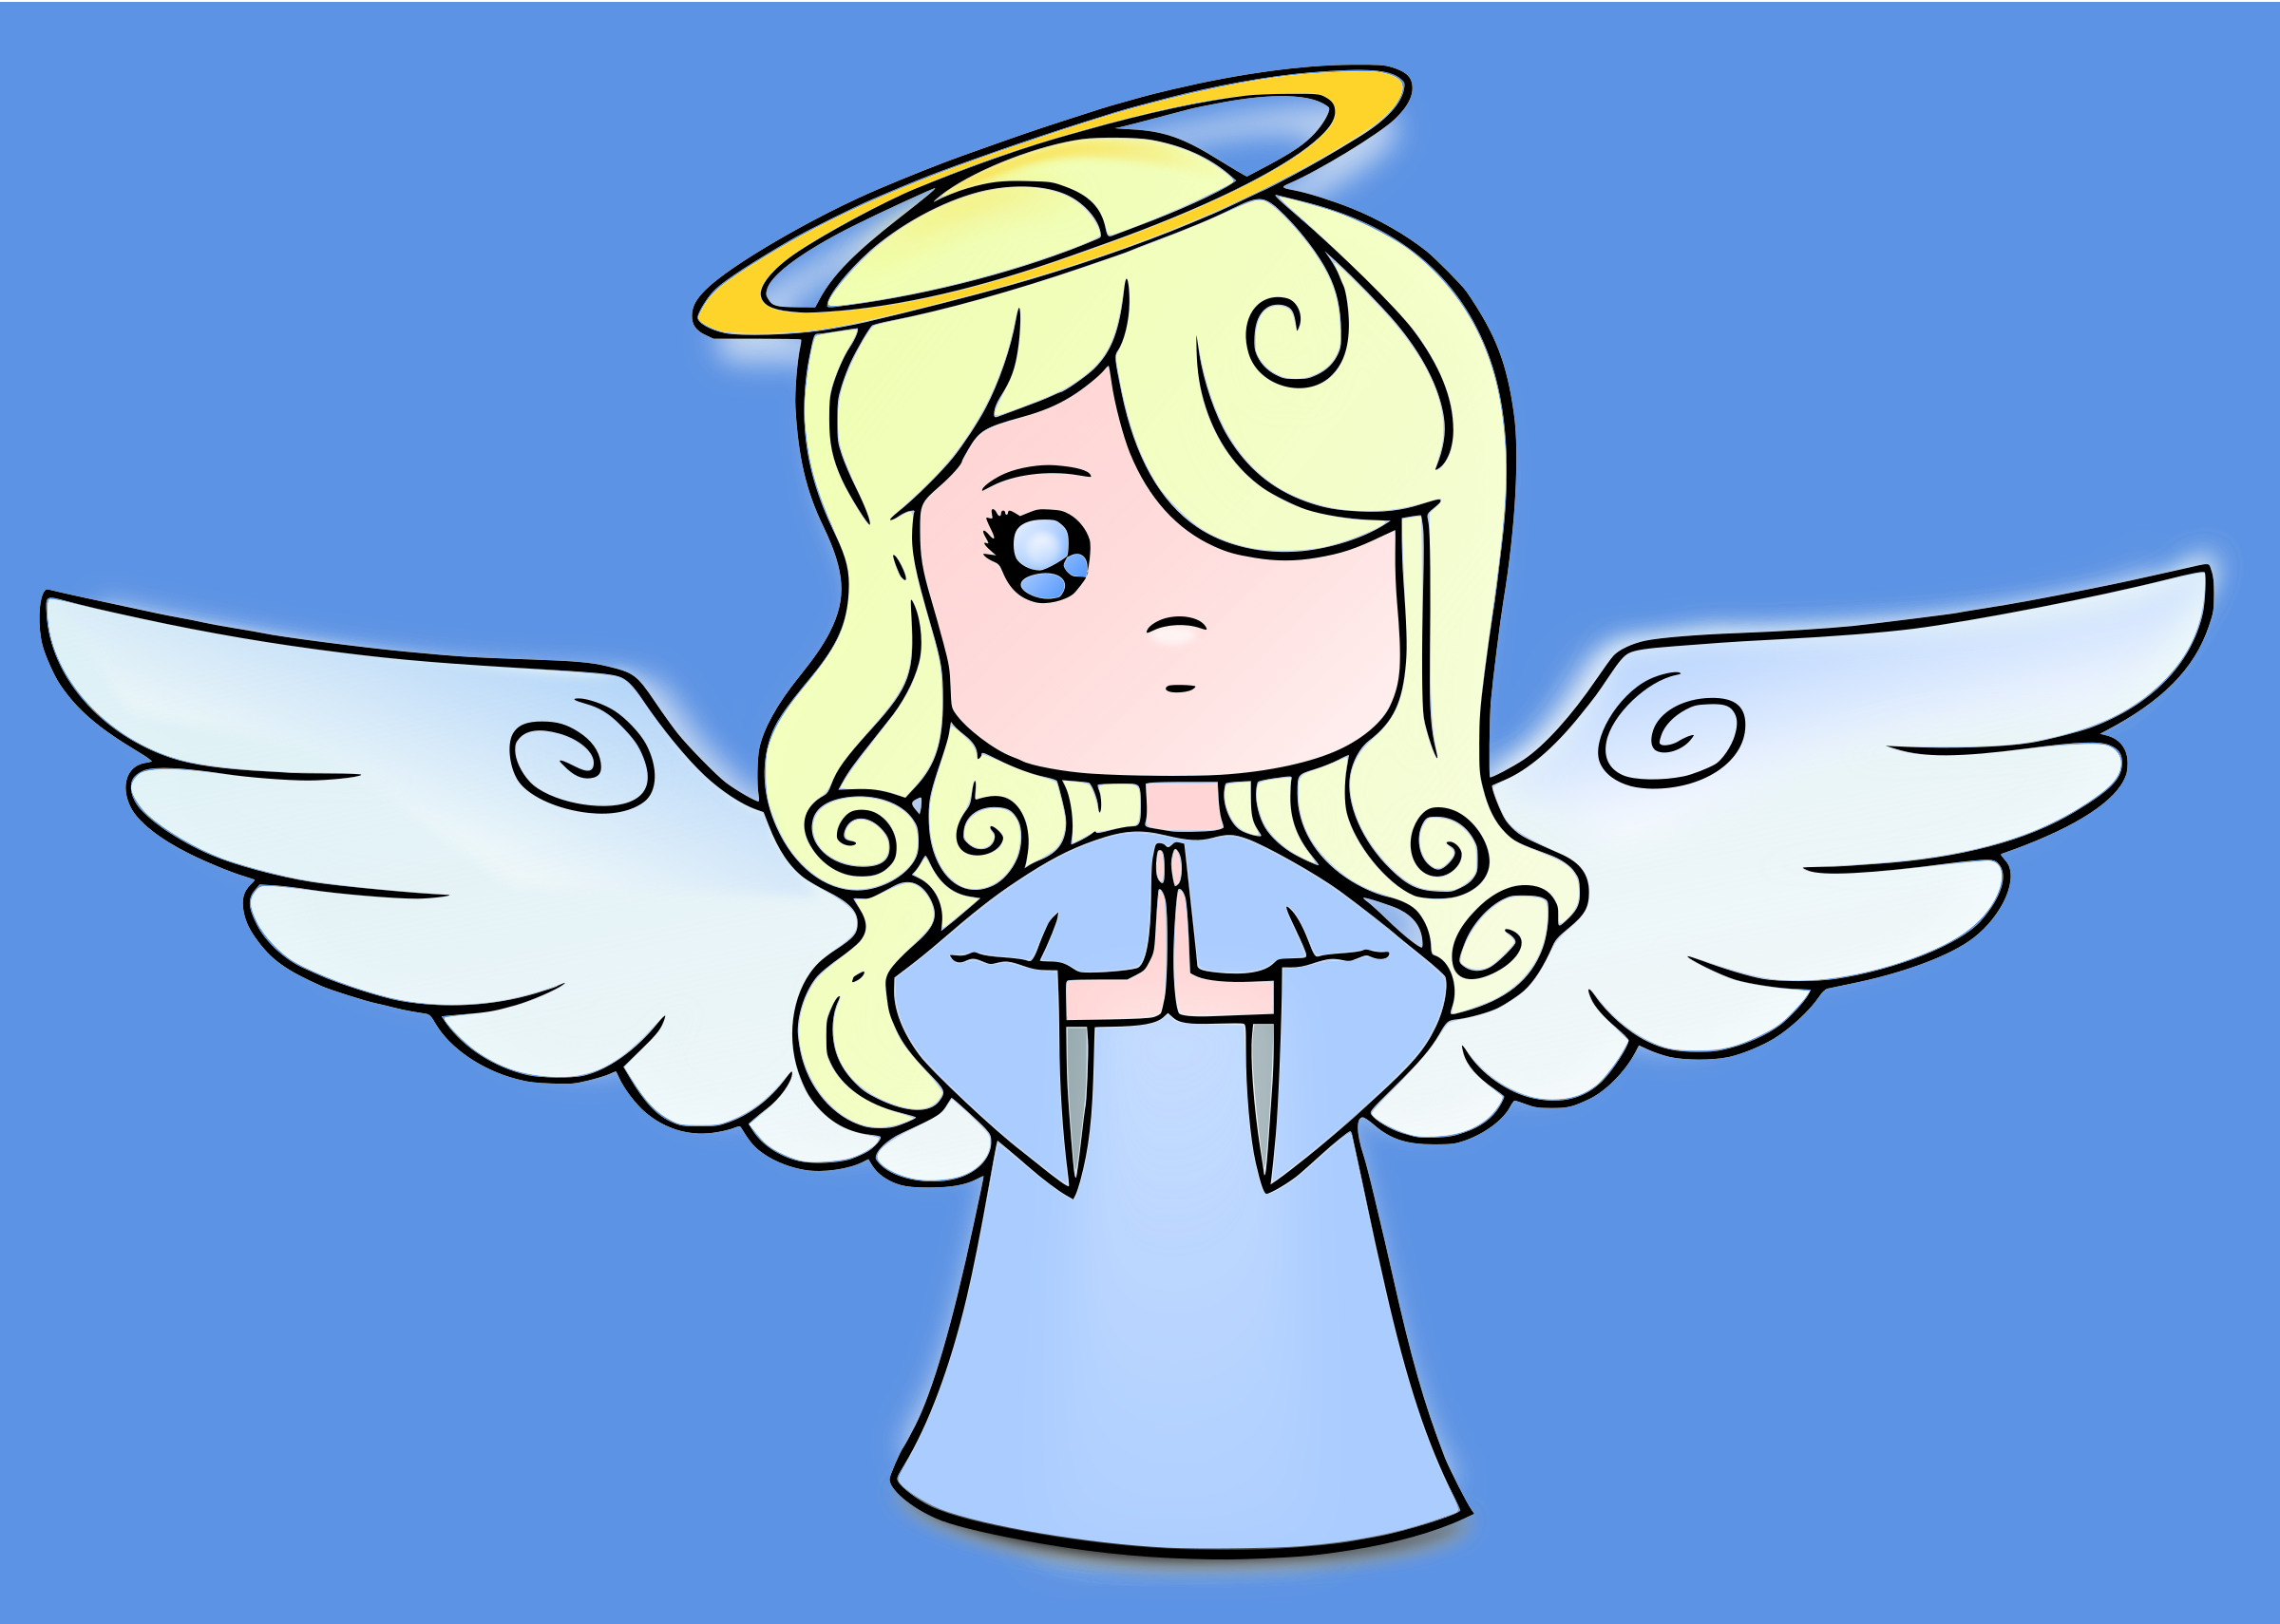 angel clipart openclipart cute log into dmca complaint favorite